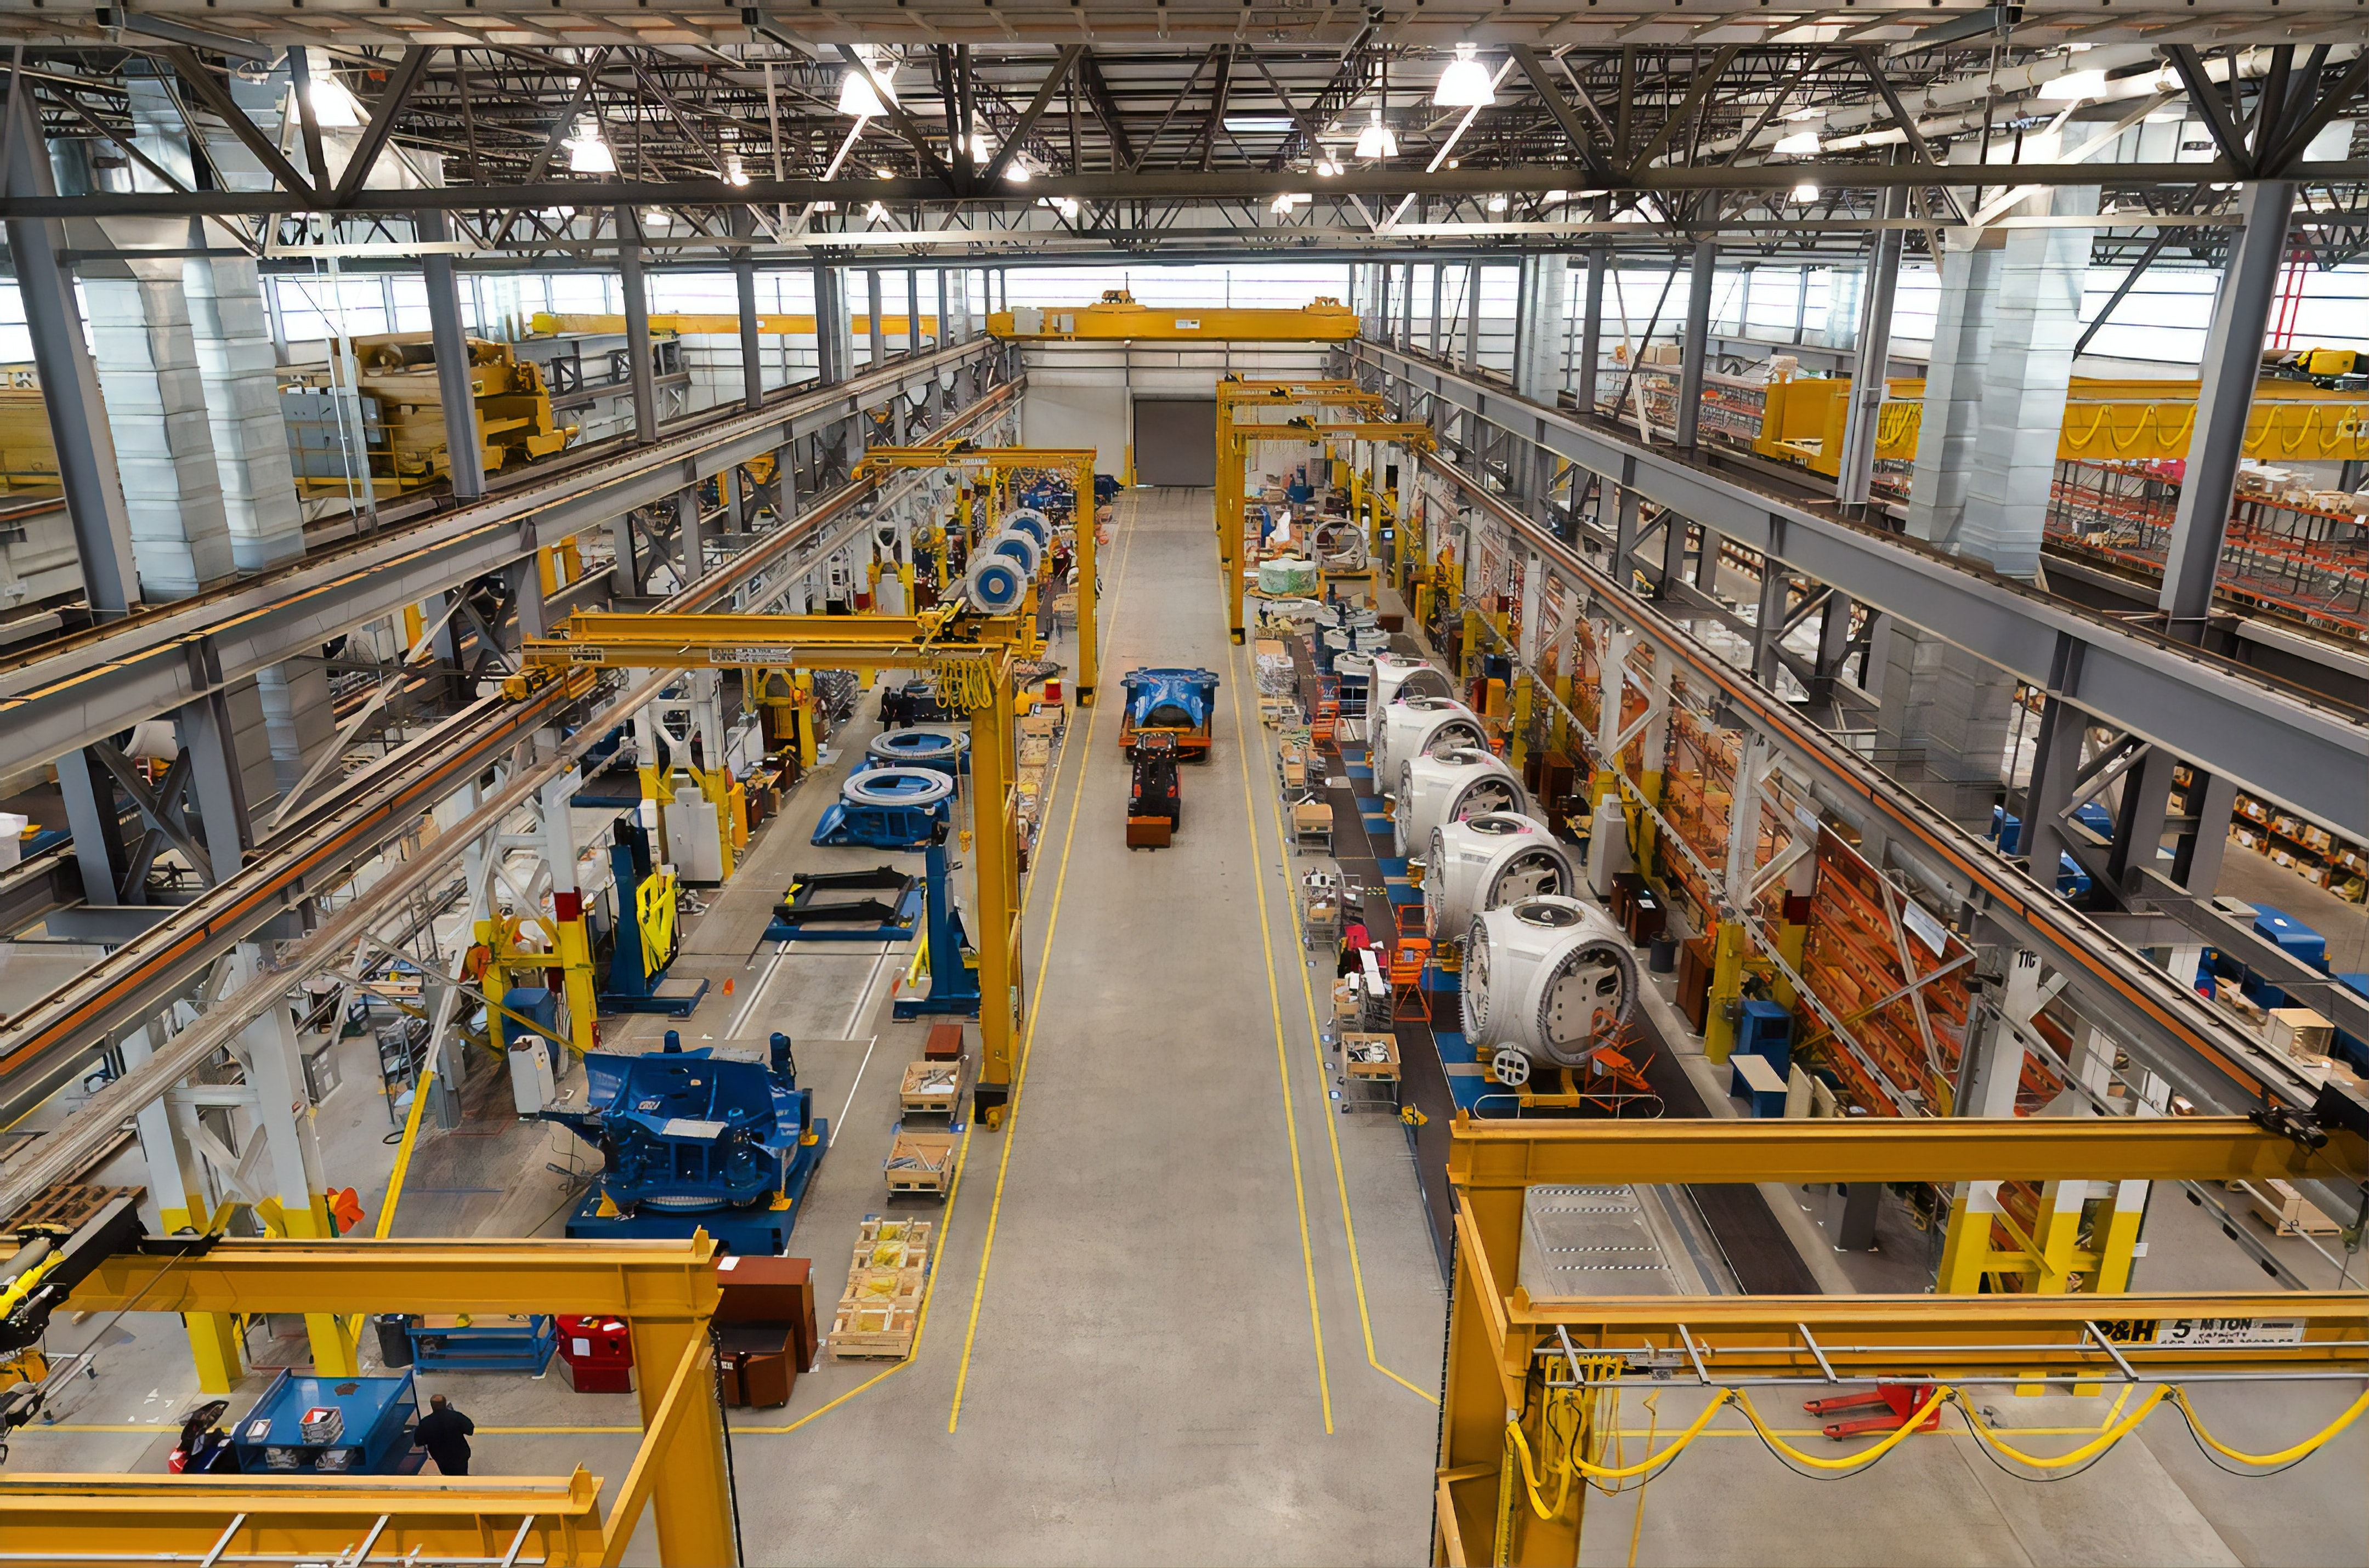 SaaS or On-Premise: What's the Better Fit for Manufacturing?